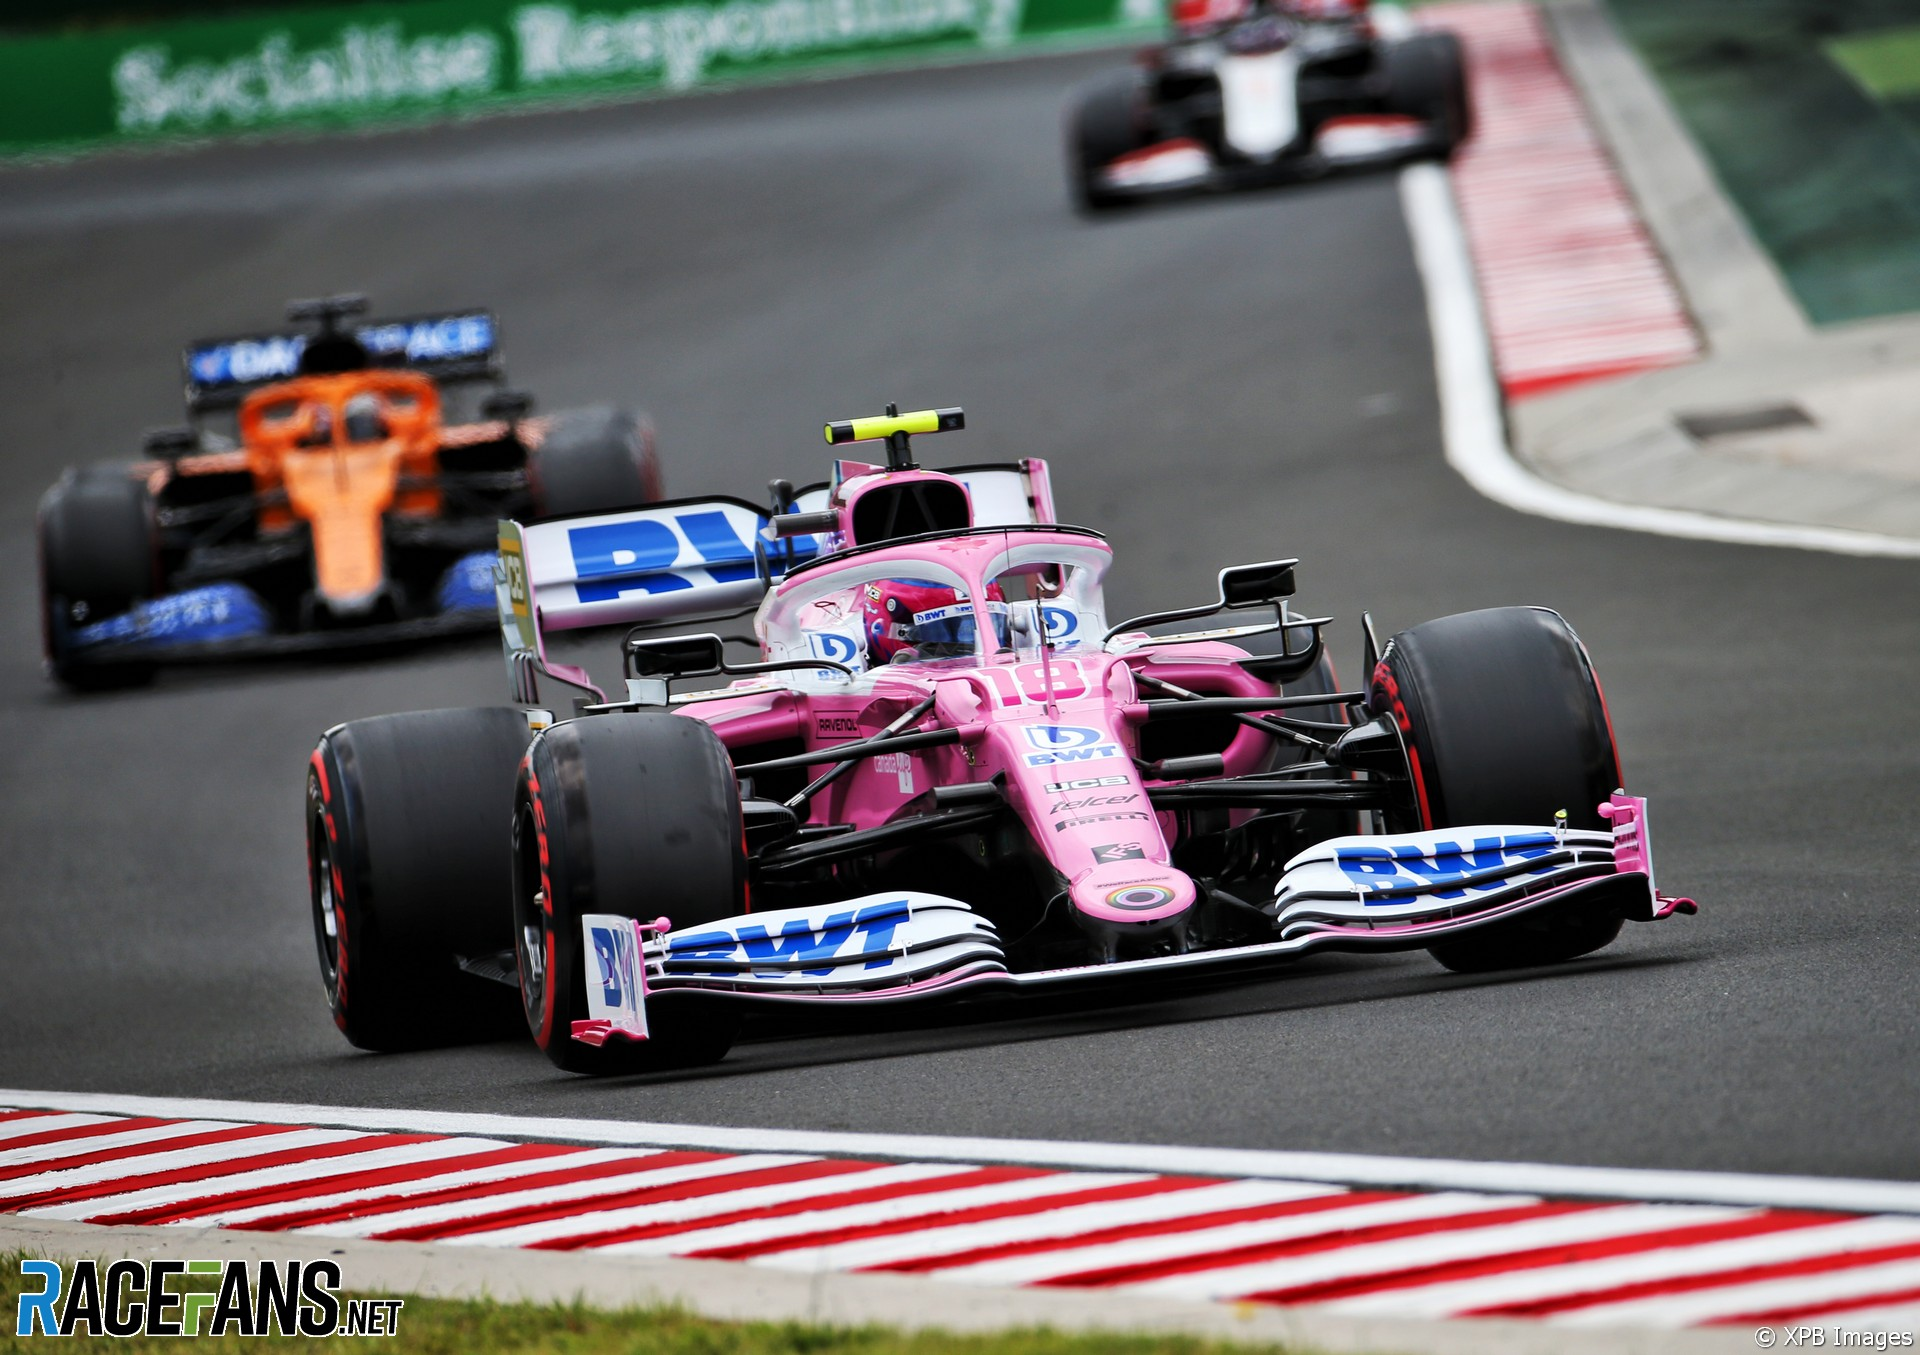 Lance Stroll, Racing Point, Hungaroring, 2020